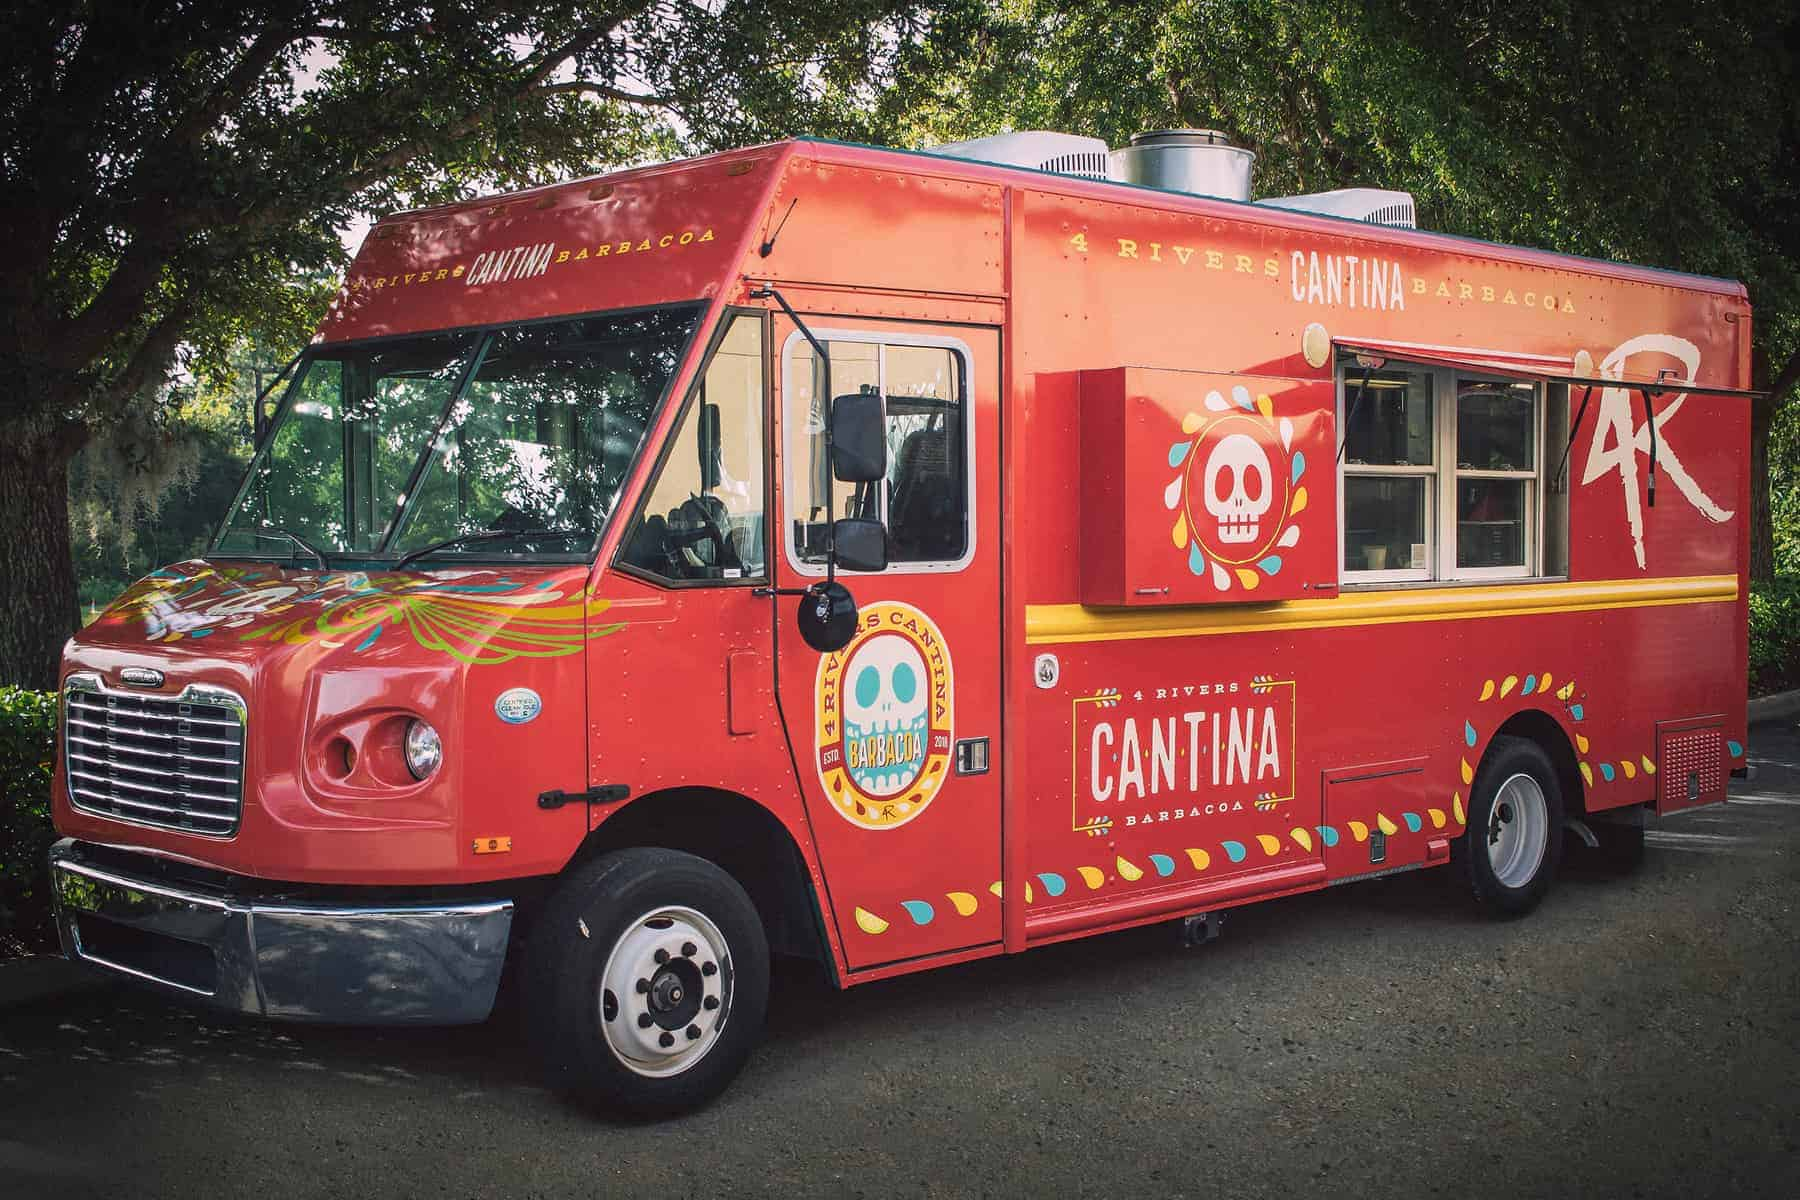 Pros and Cons for All Disney Springs Restaurants - 4 Rivers Cantina Barbacoa Food Truck (dinner)